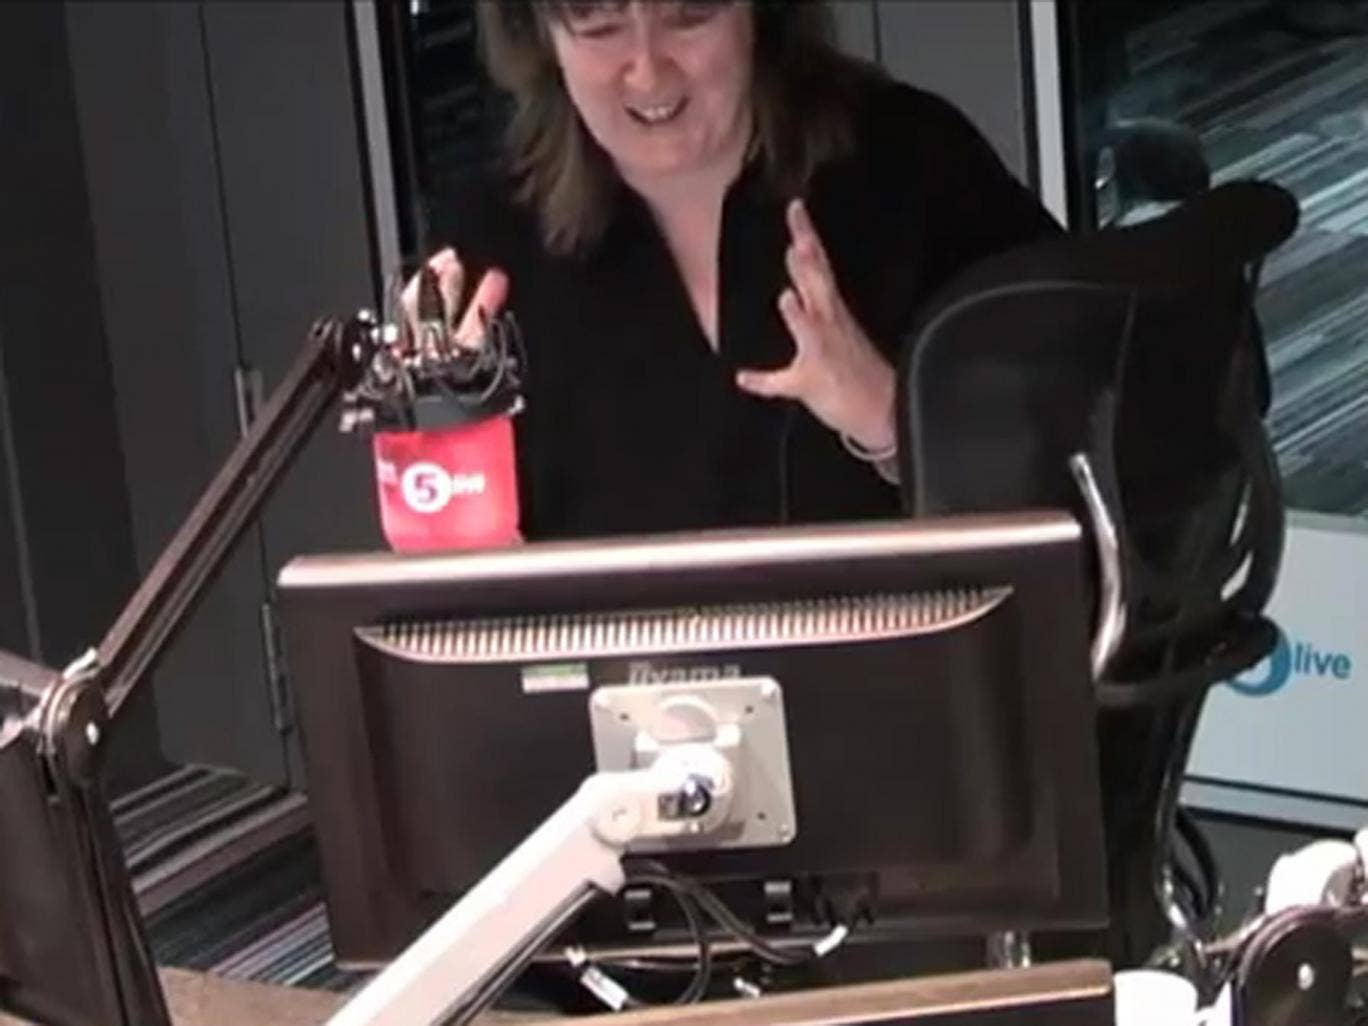 BBC 5Live presenter Shelagh Fogarty gets flustered after a mouse in spotted in the studio